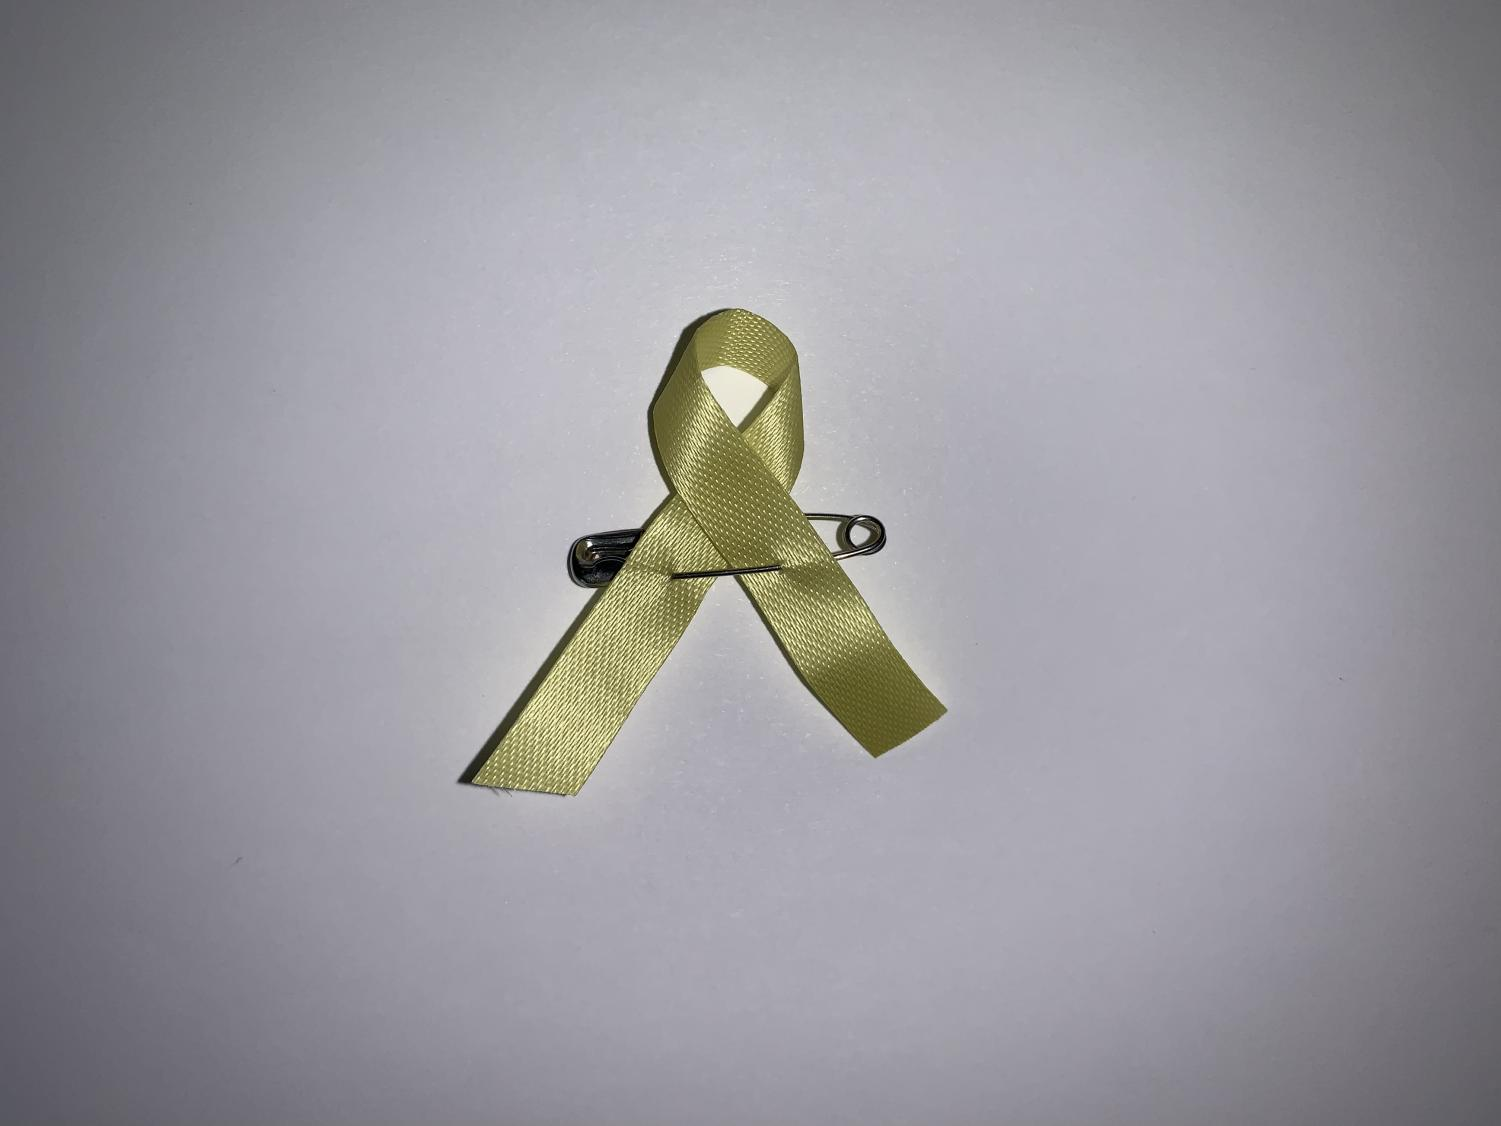 ASB is inviting students to wear yellow on Friday to represent the yellow ribbon.